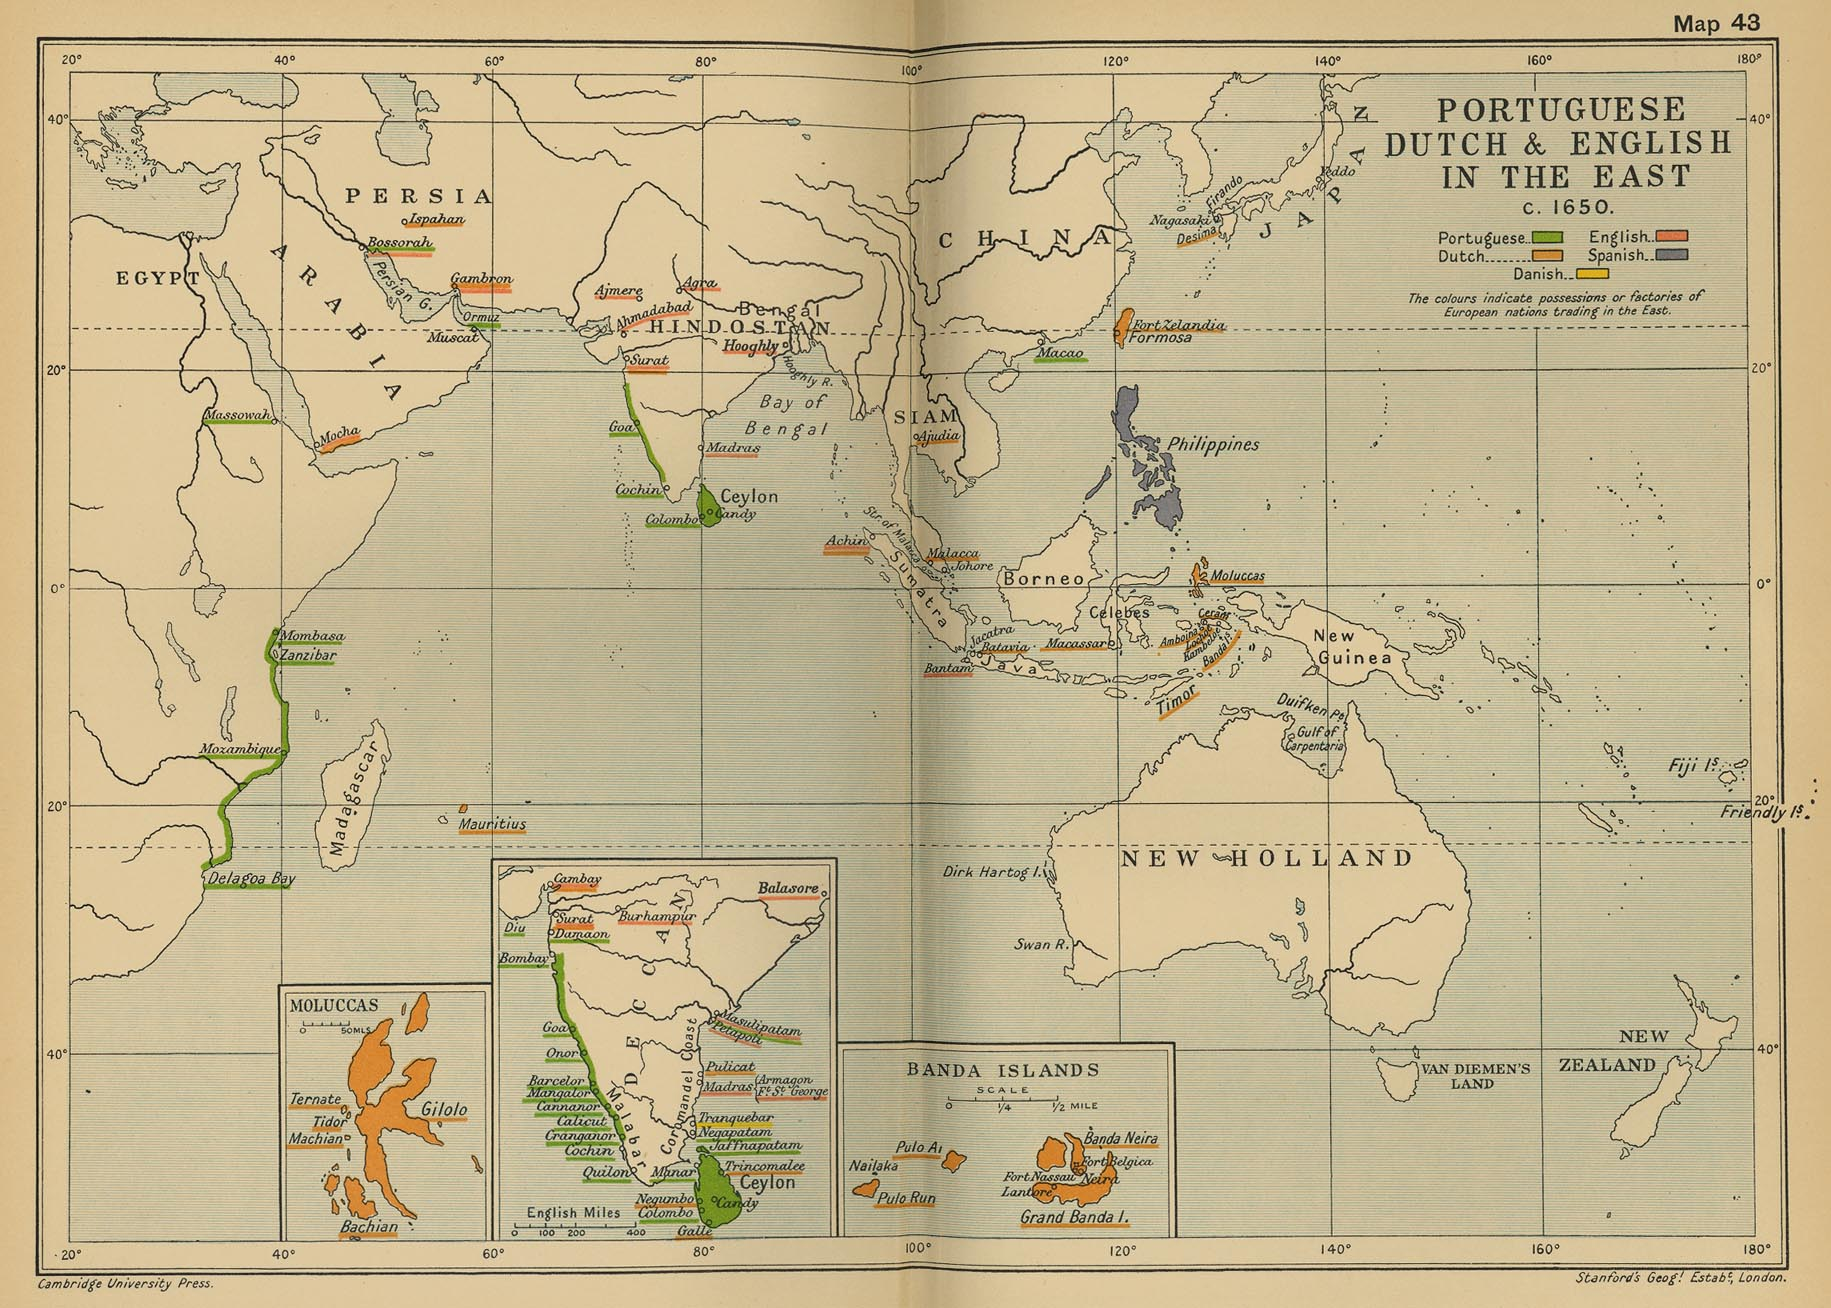 Cambridge modern history atlas 1912 perry castaeda map collection map 42 portuguese dutch and english in the east c gumiabroncs Images